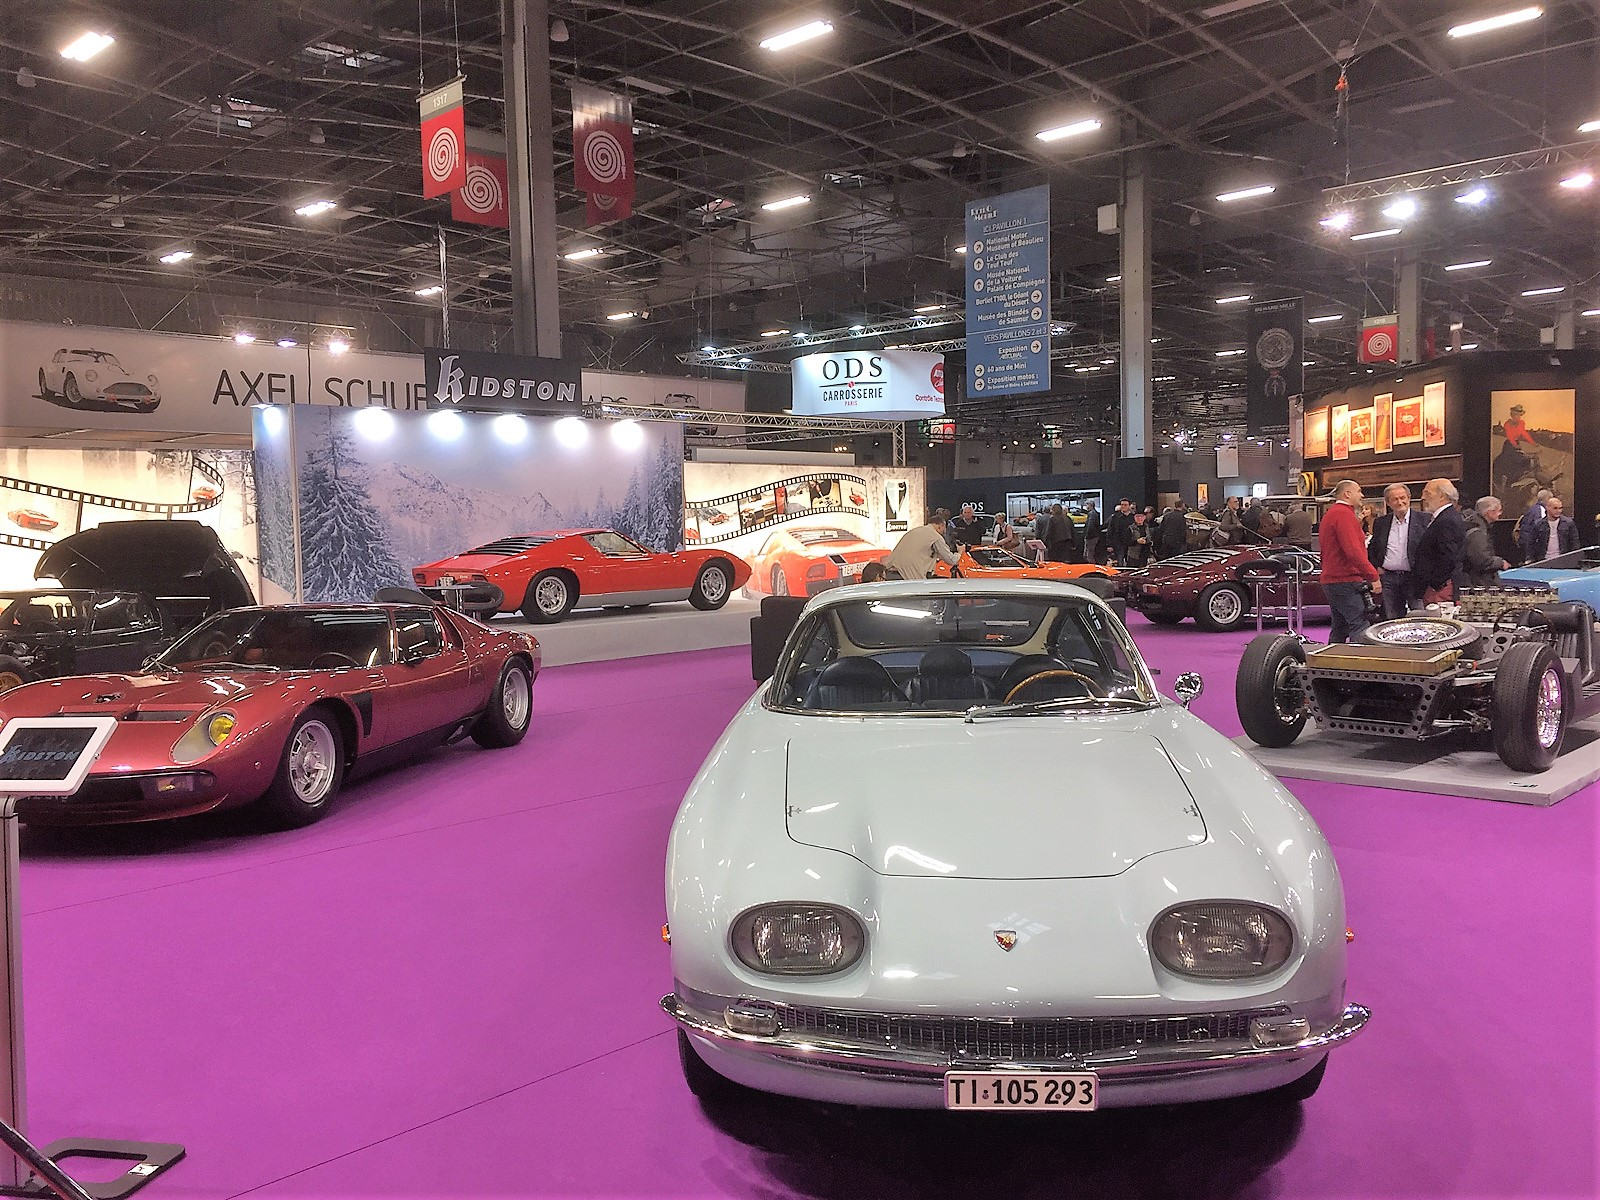 Retromobile 2019: A step into Classic car wonderland